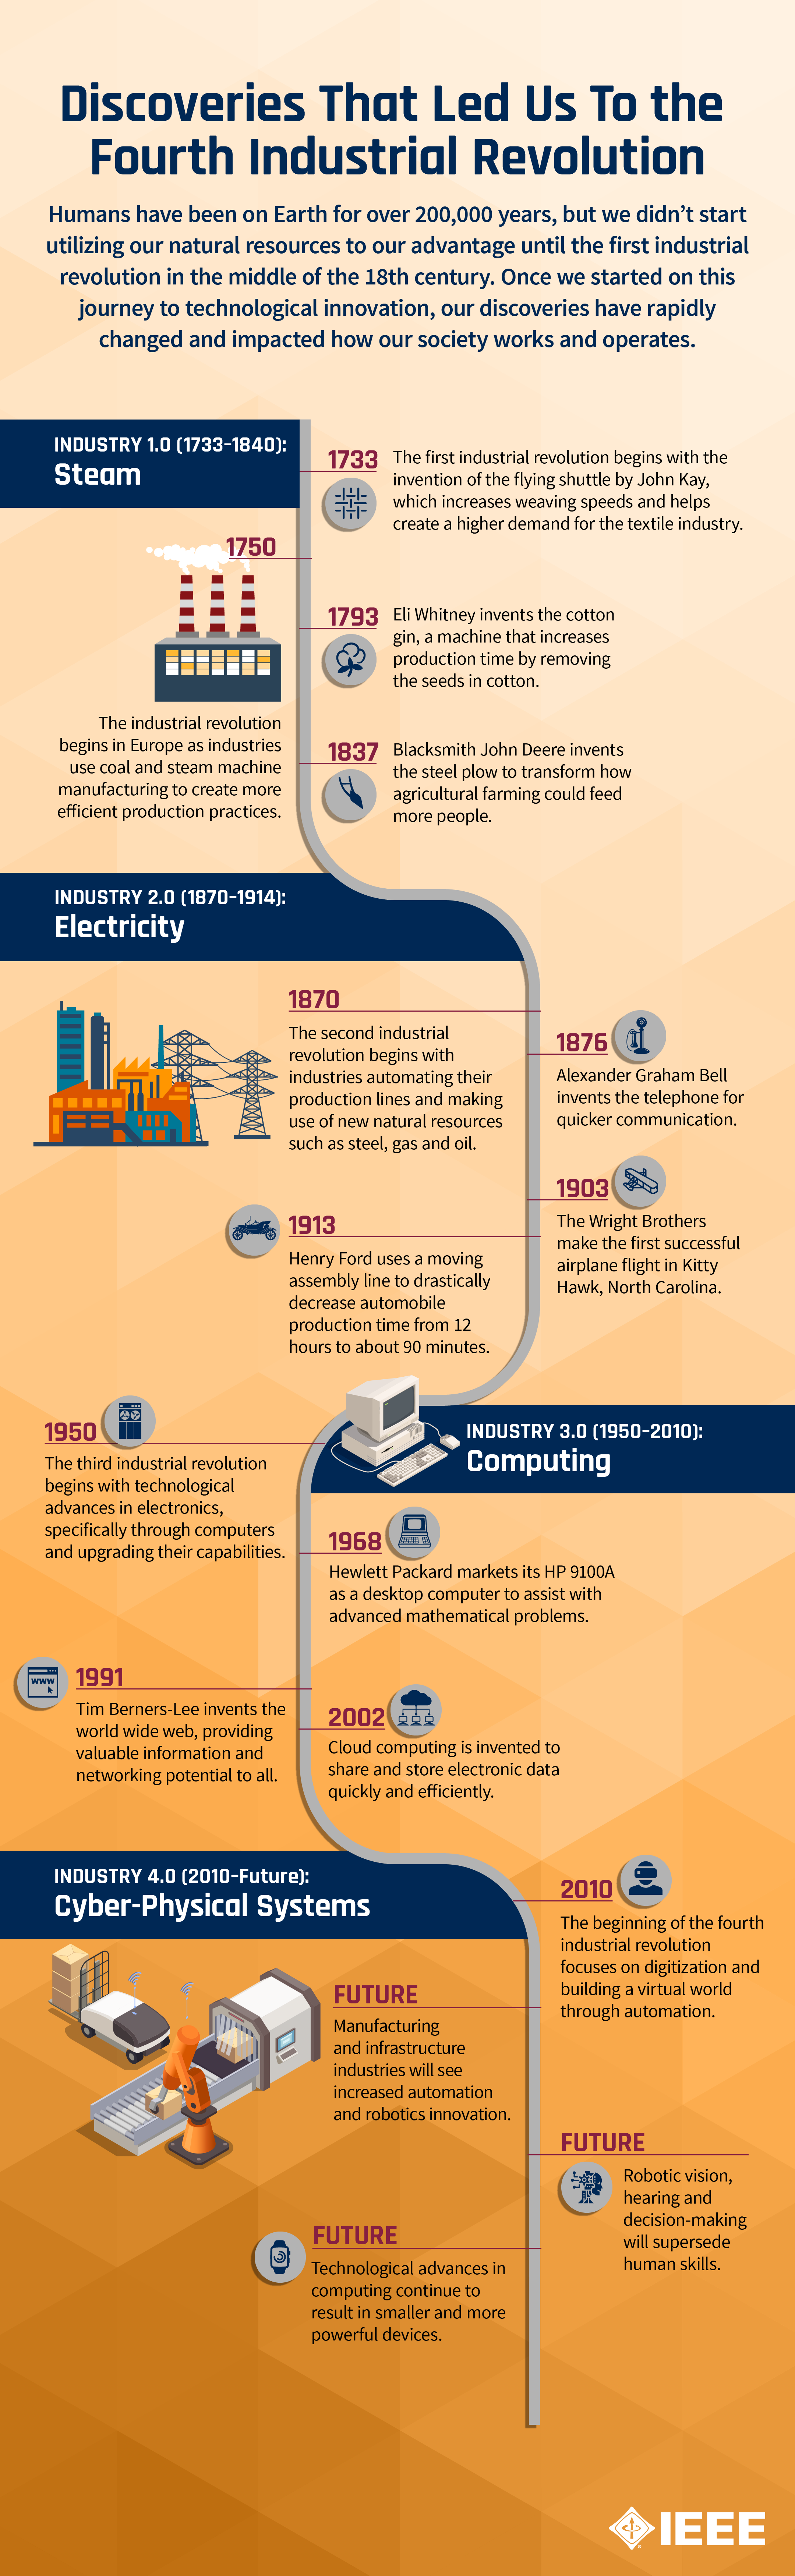 Industry 4.0, timeline of the industrial revolutions